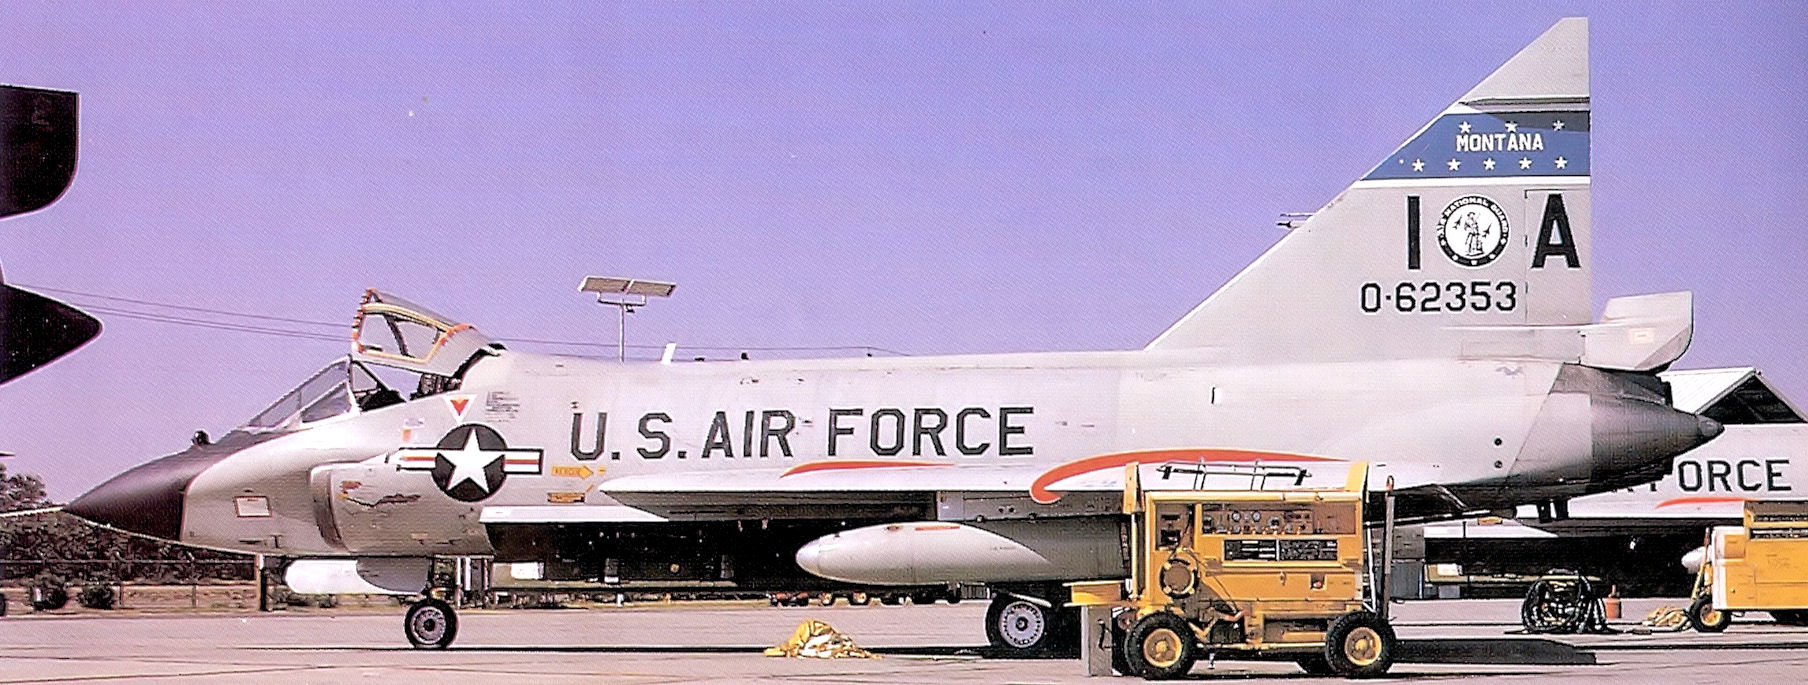 File:186th Fighter-Interceptor Squadron F-102 56-2353.jpg